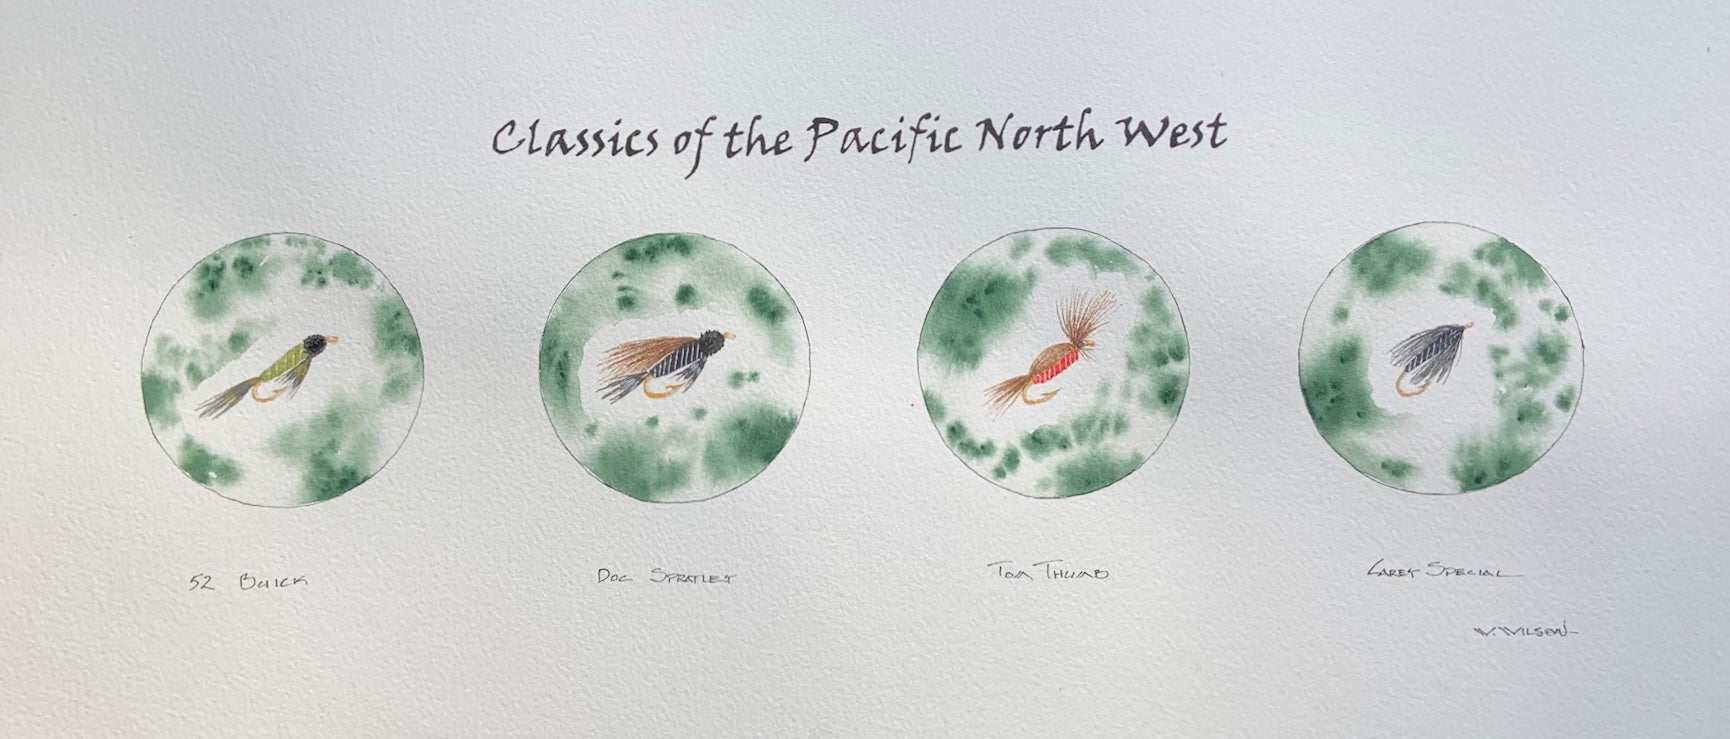 Classics of the Pacific North West - Fly Patterns